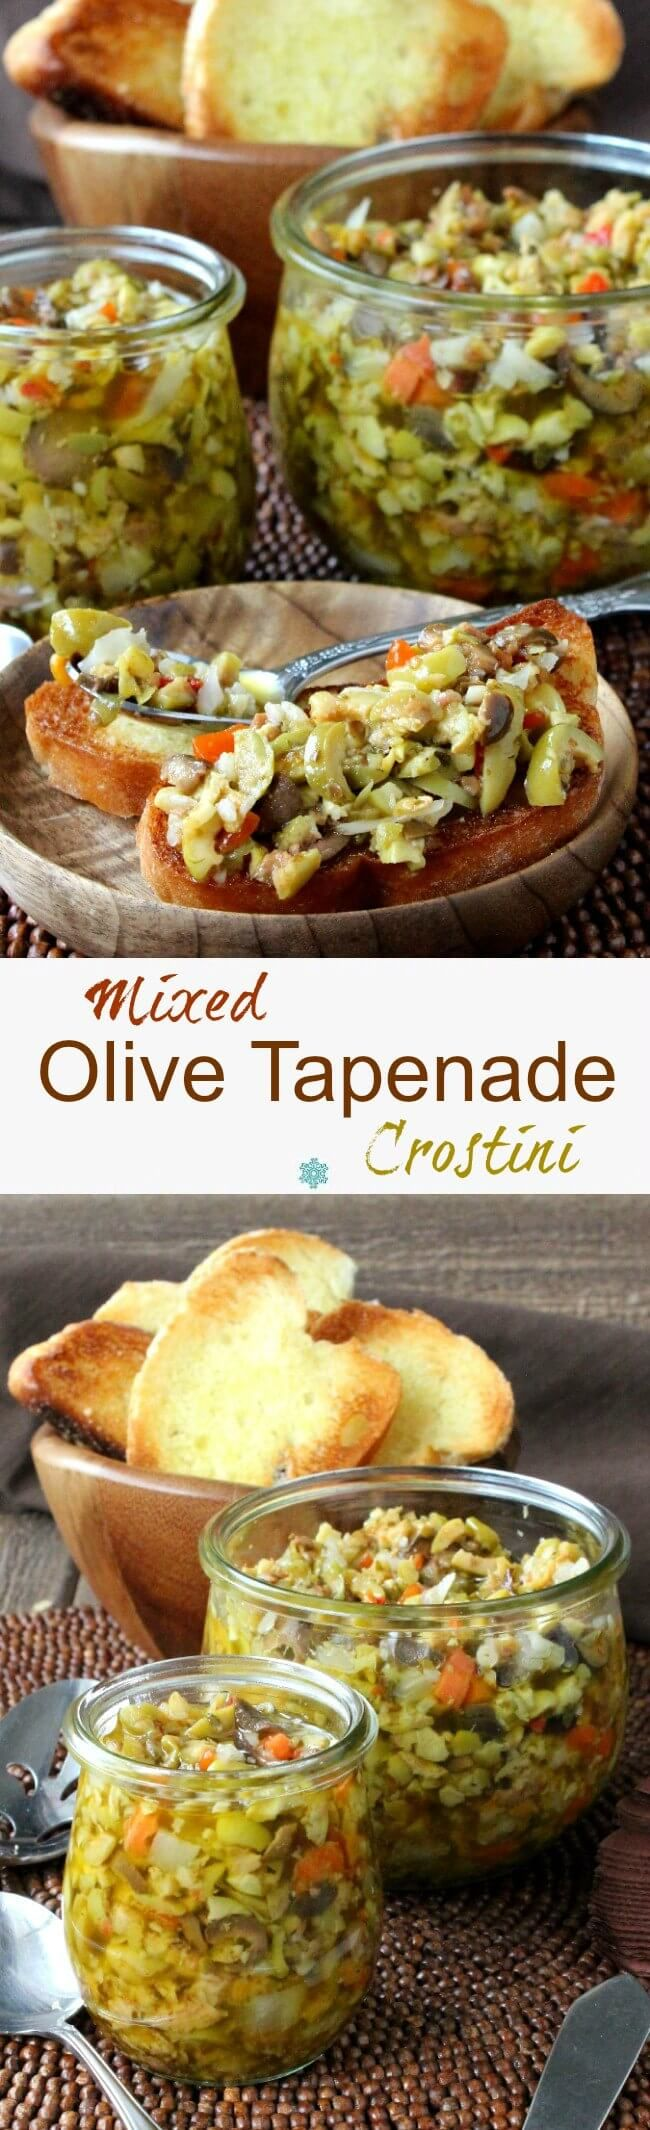 Mixed Olive Tapenade Crostini is a classic recipe that can be prepared quickly for a special appetizer. Spruced up for just a bit more oomph!